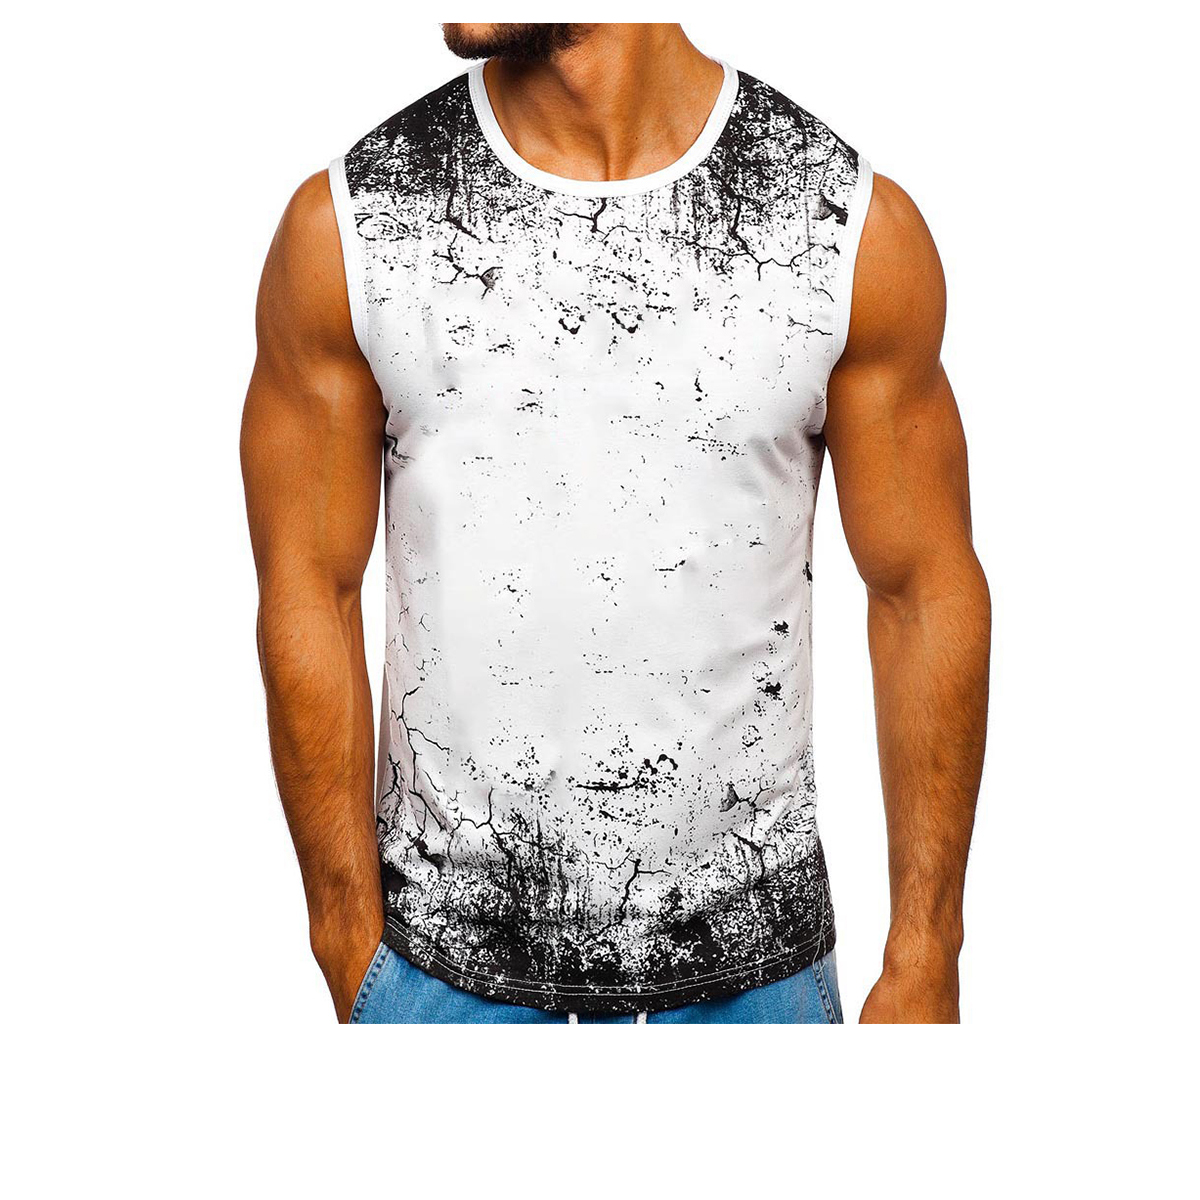 Great for Holidays Mens Muscle Vests Sports Sleeveless Top Running Workout Vest Activewear